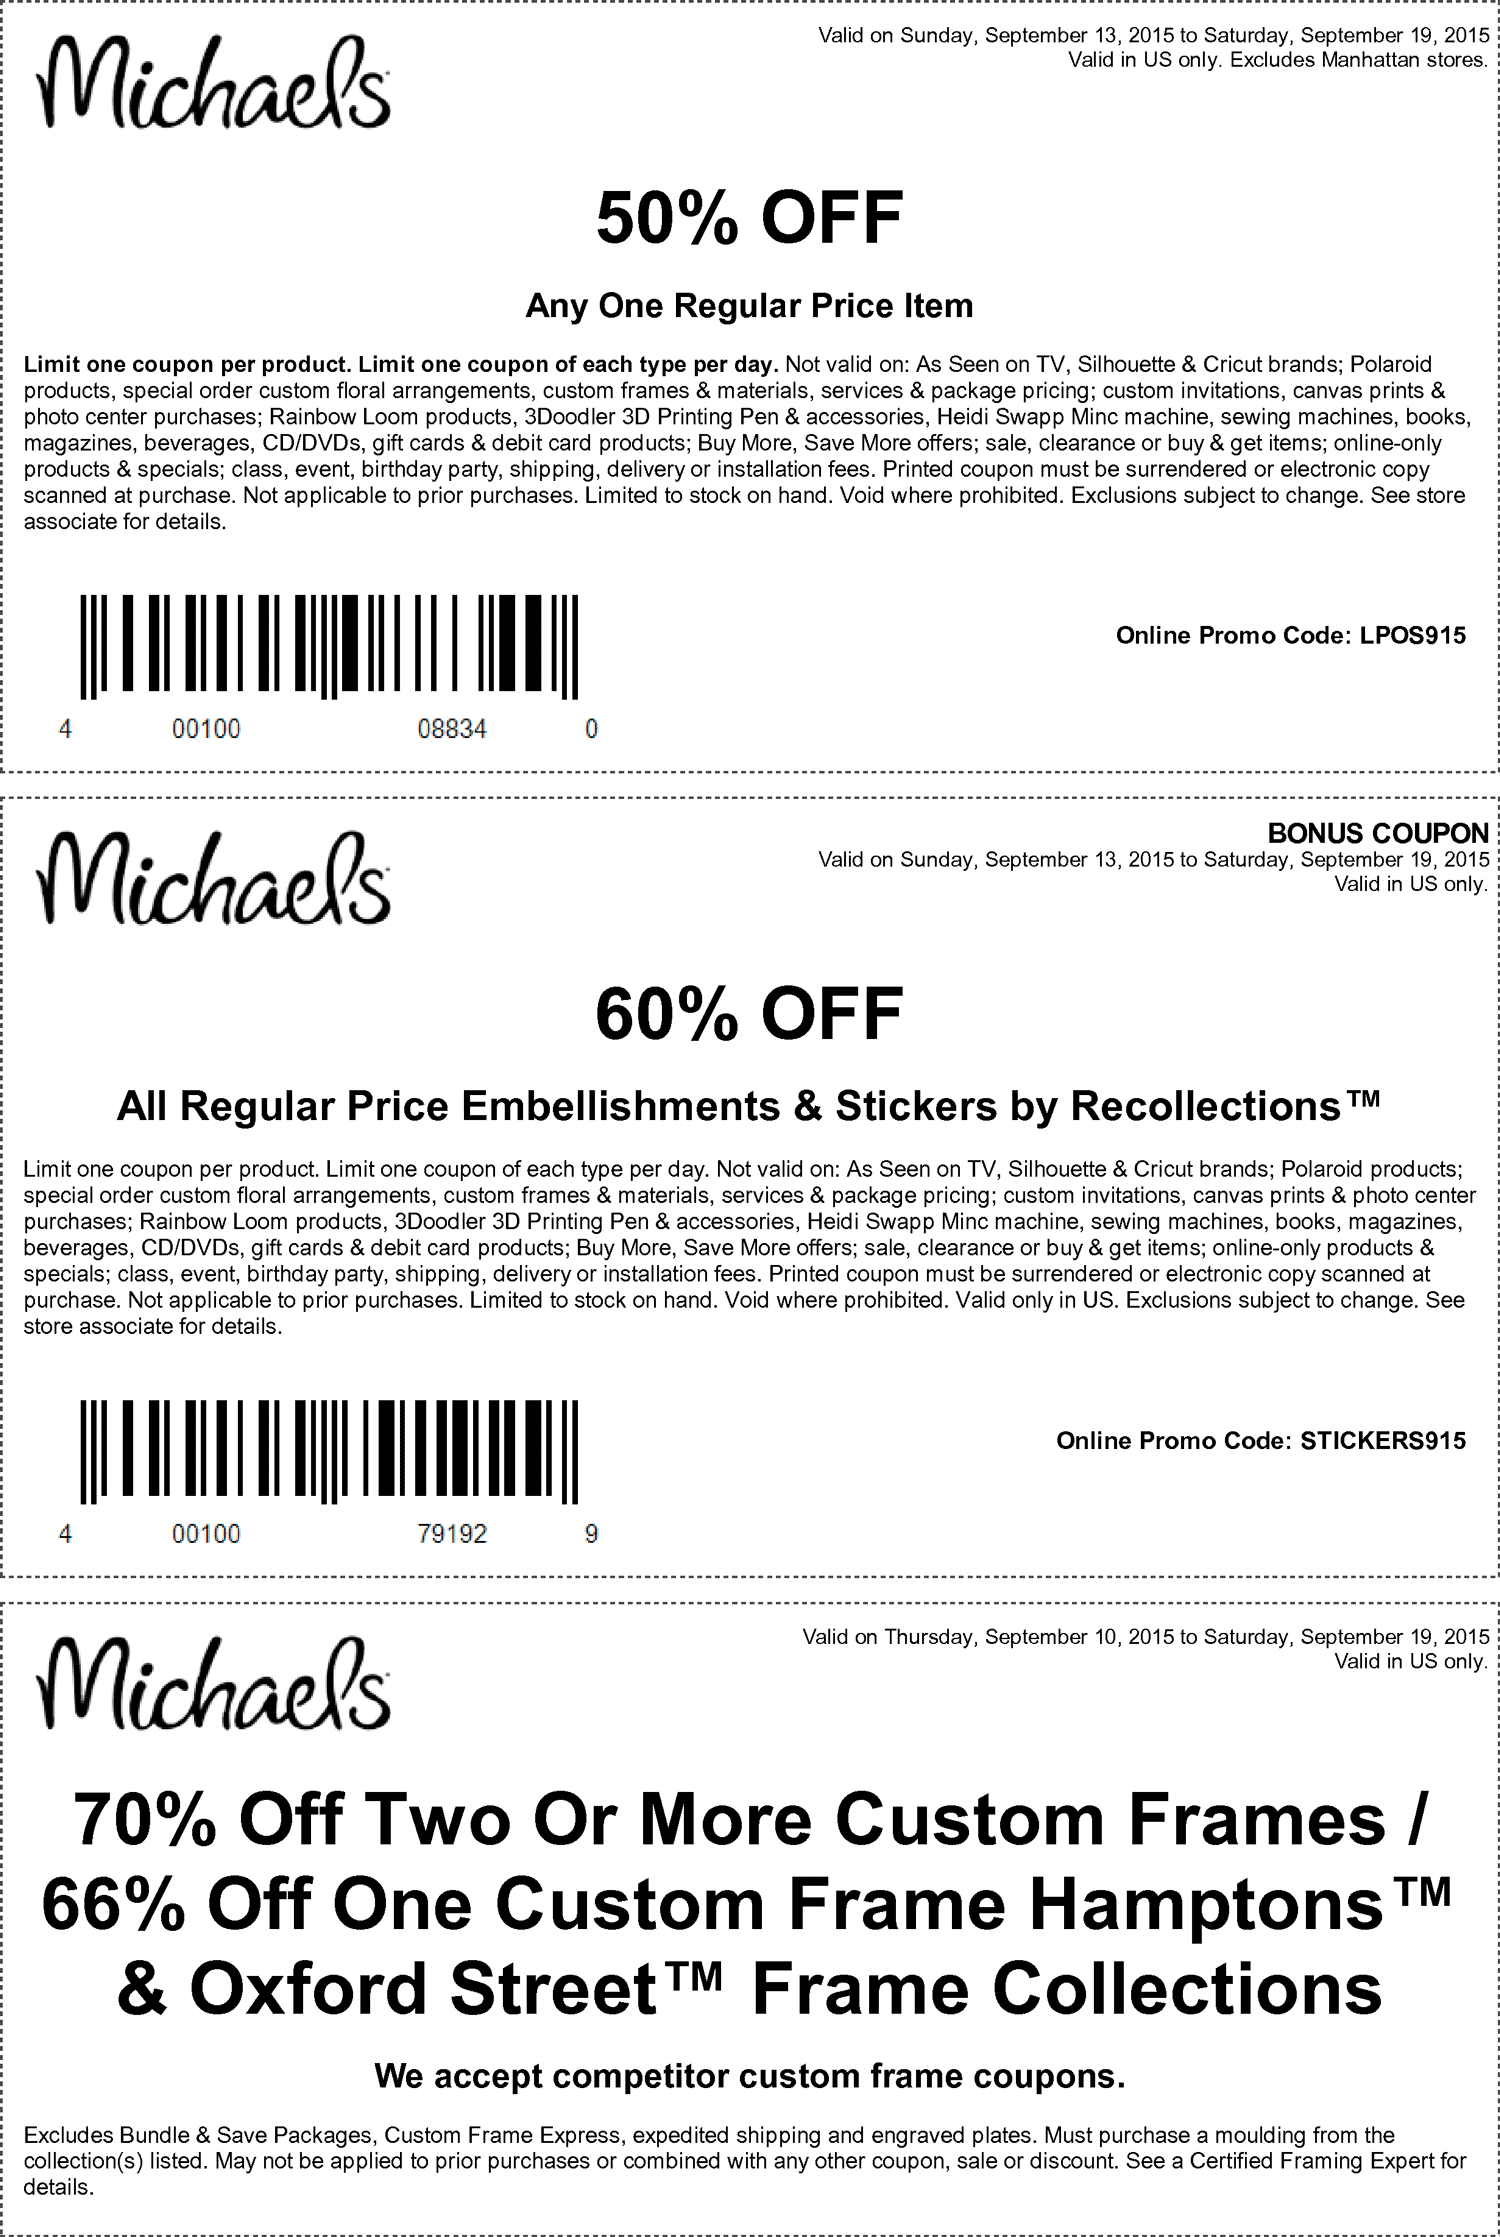 Michaels Coupon March 2018 50% off a single item at Michaels, or online via promo code LPOS915